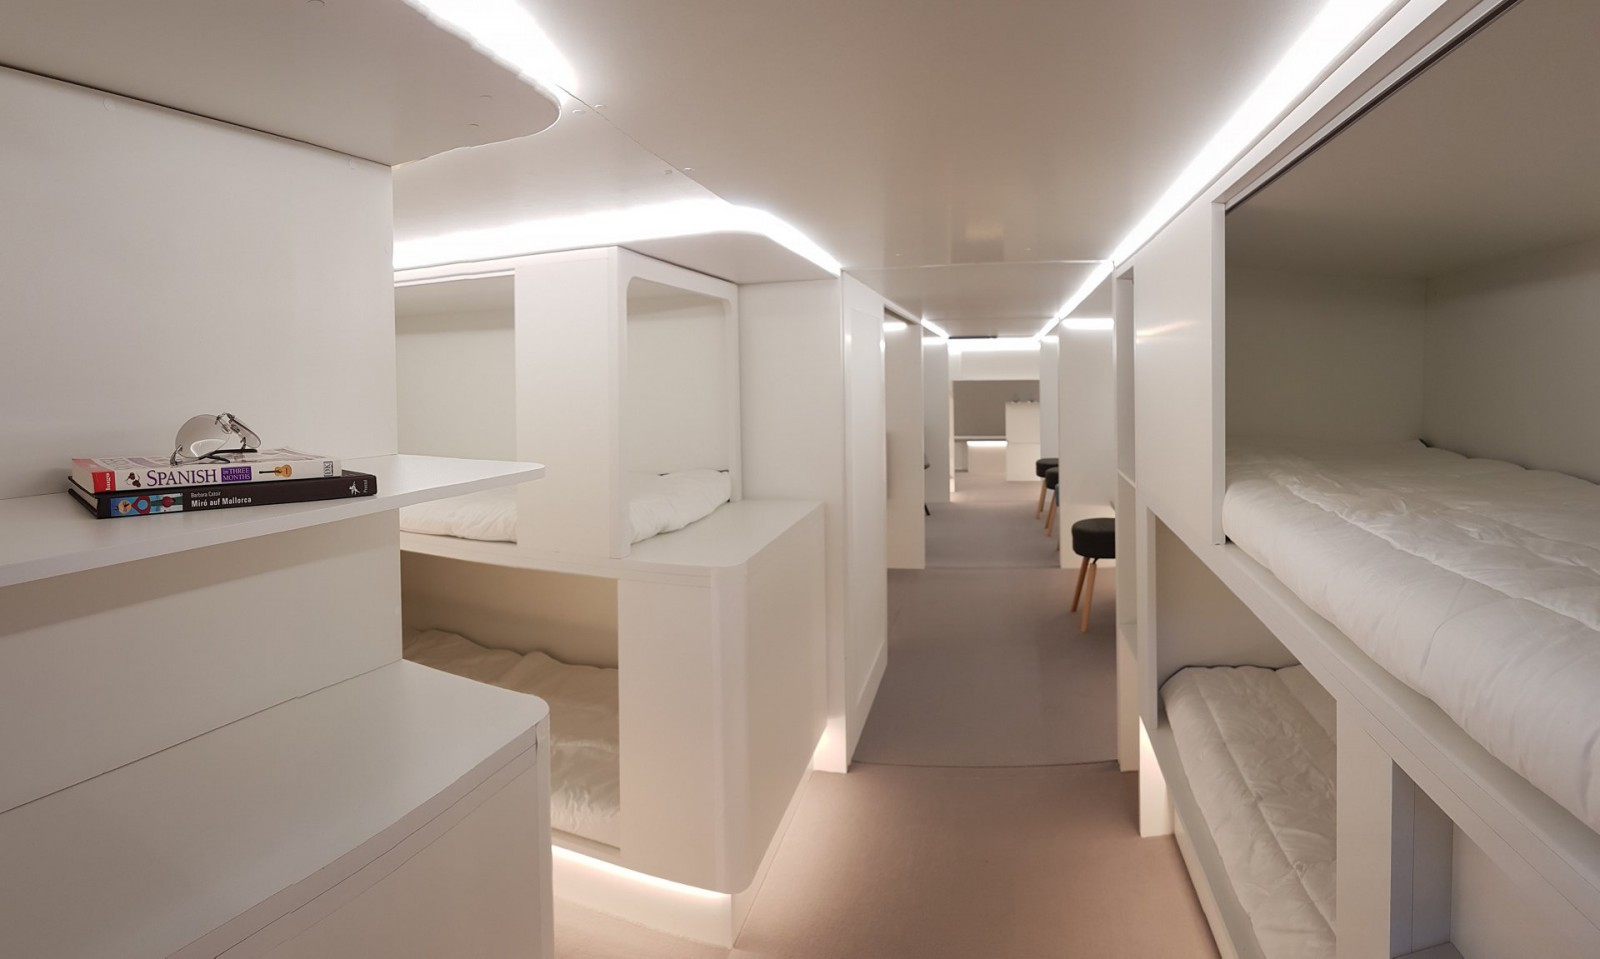 Airbus to offer sleeping berths down in cargo hold